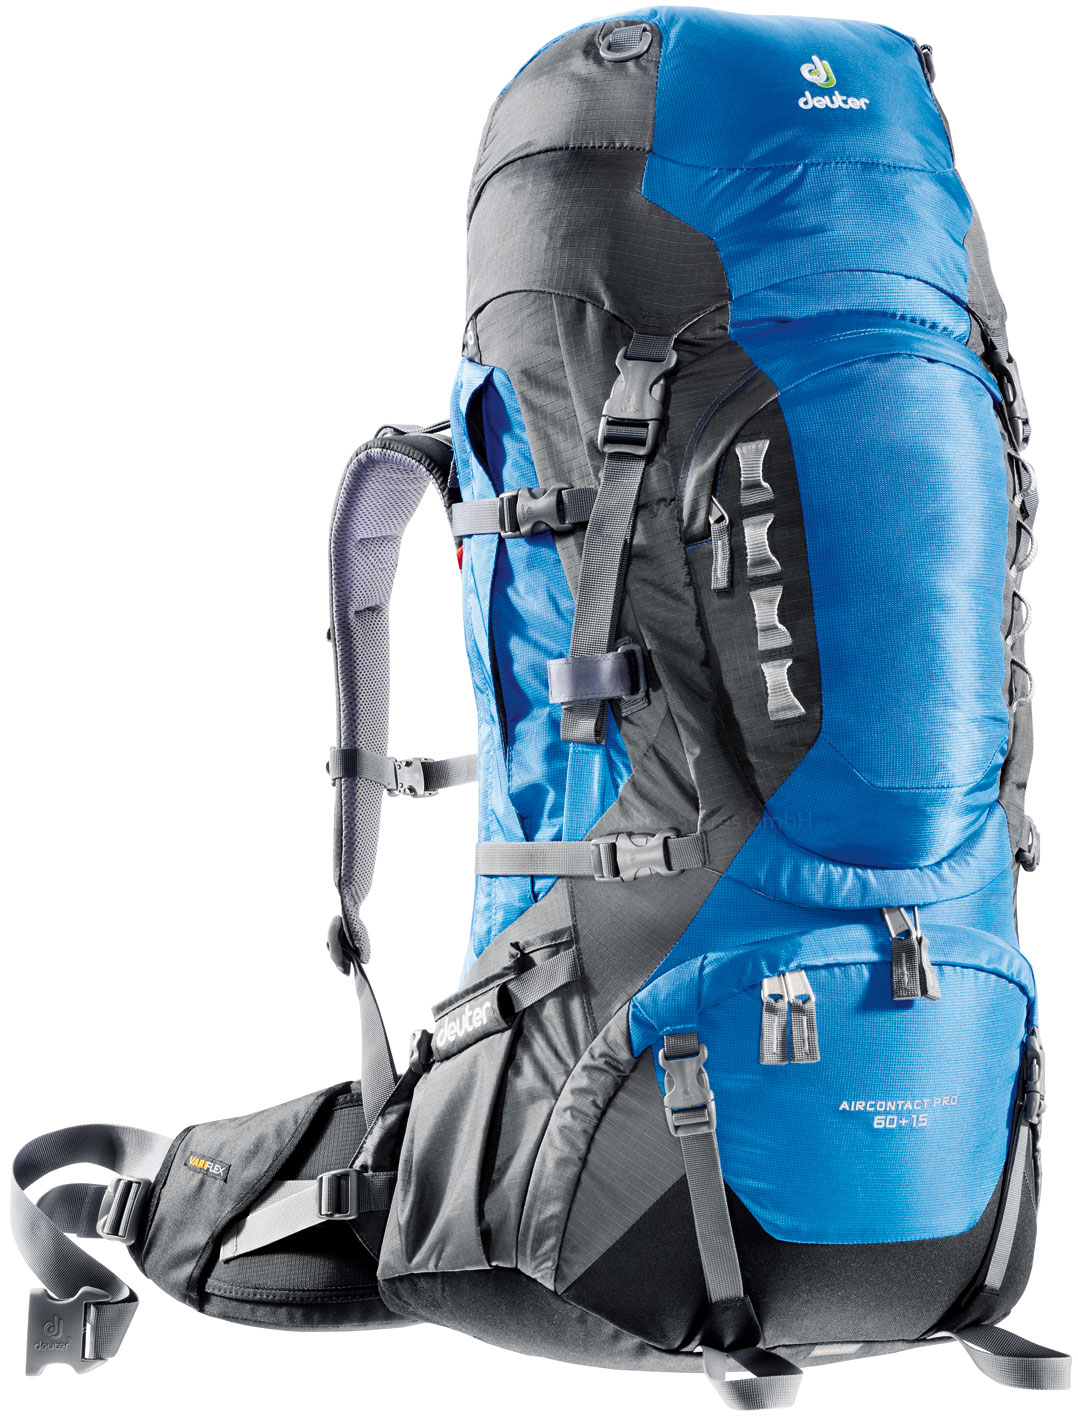 Deuter Aircontact PRO 60 + 15 ocean-anthracite-30